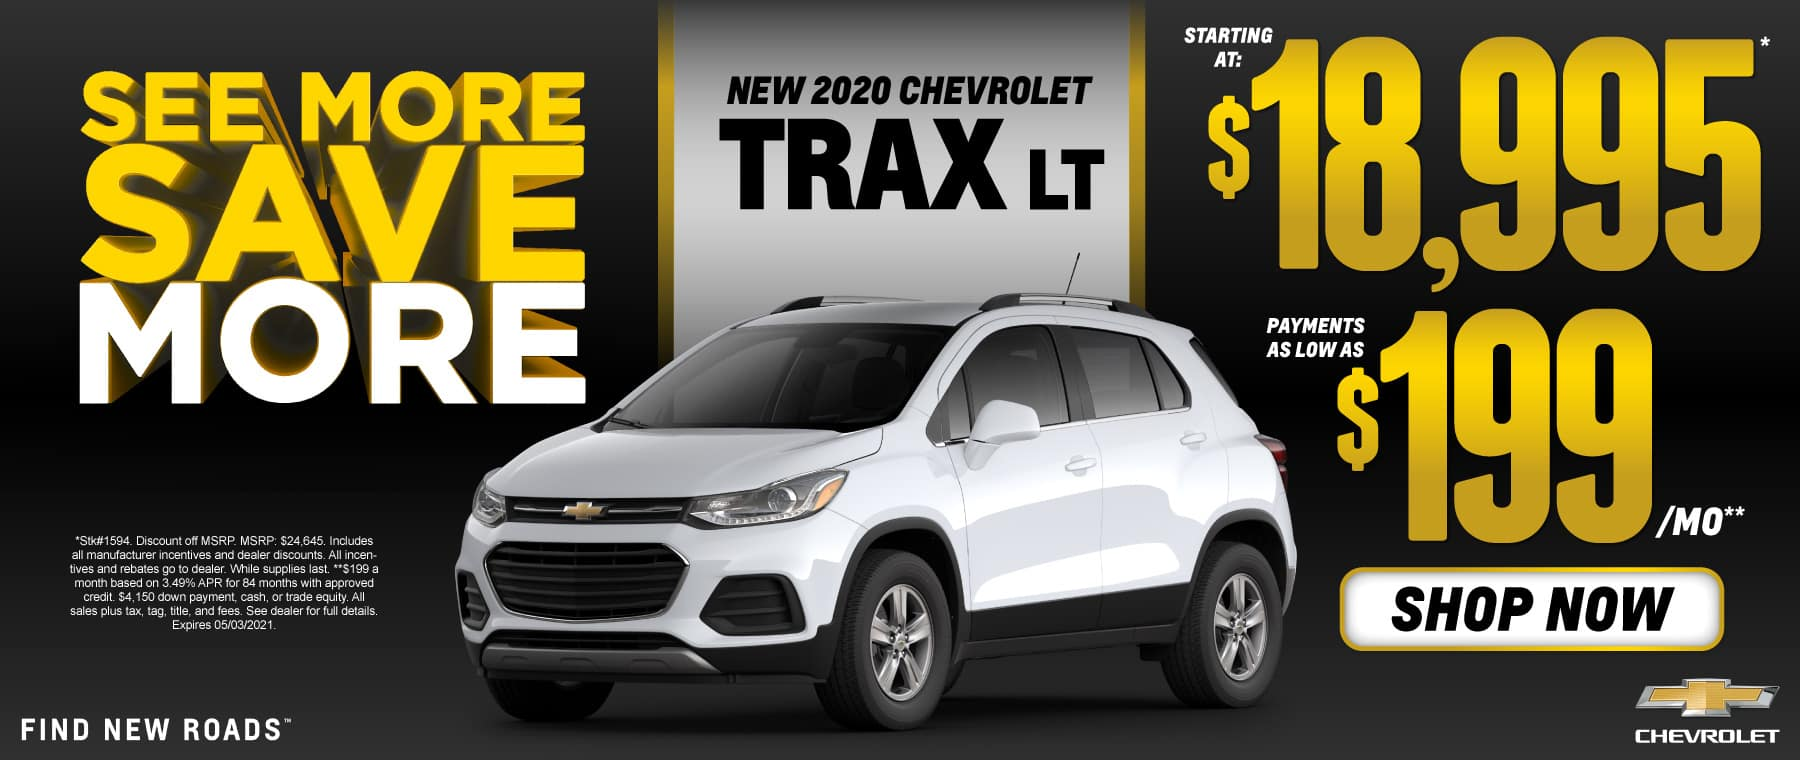 New 2020 Chevy Trax - $18,995 - Shop Now